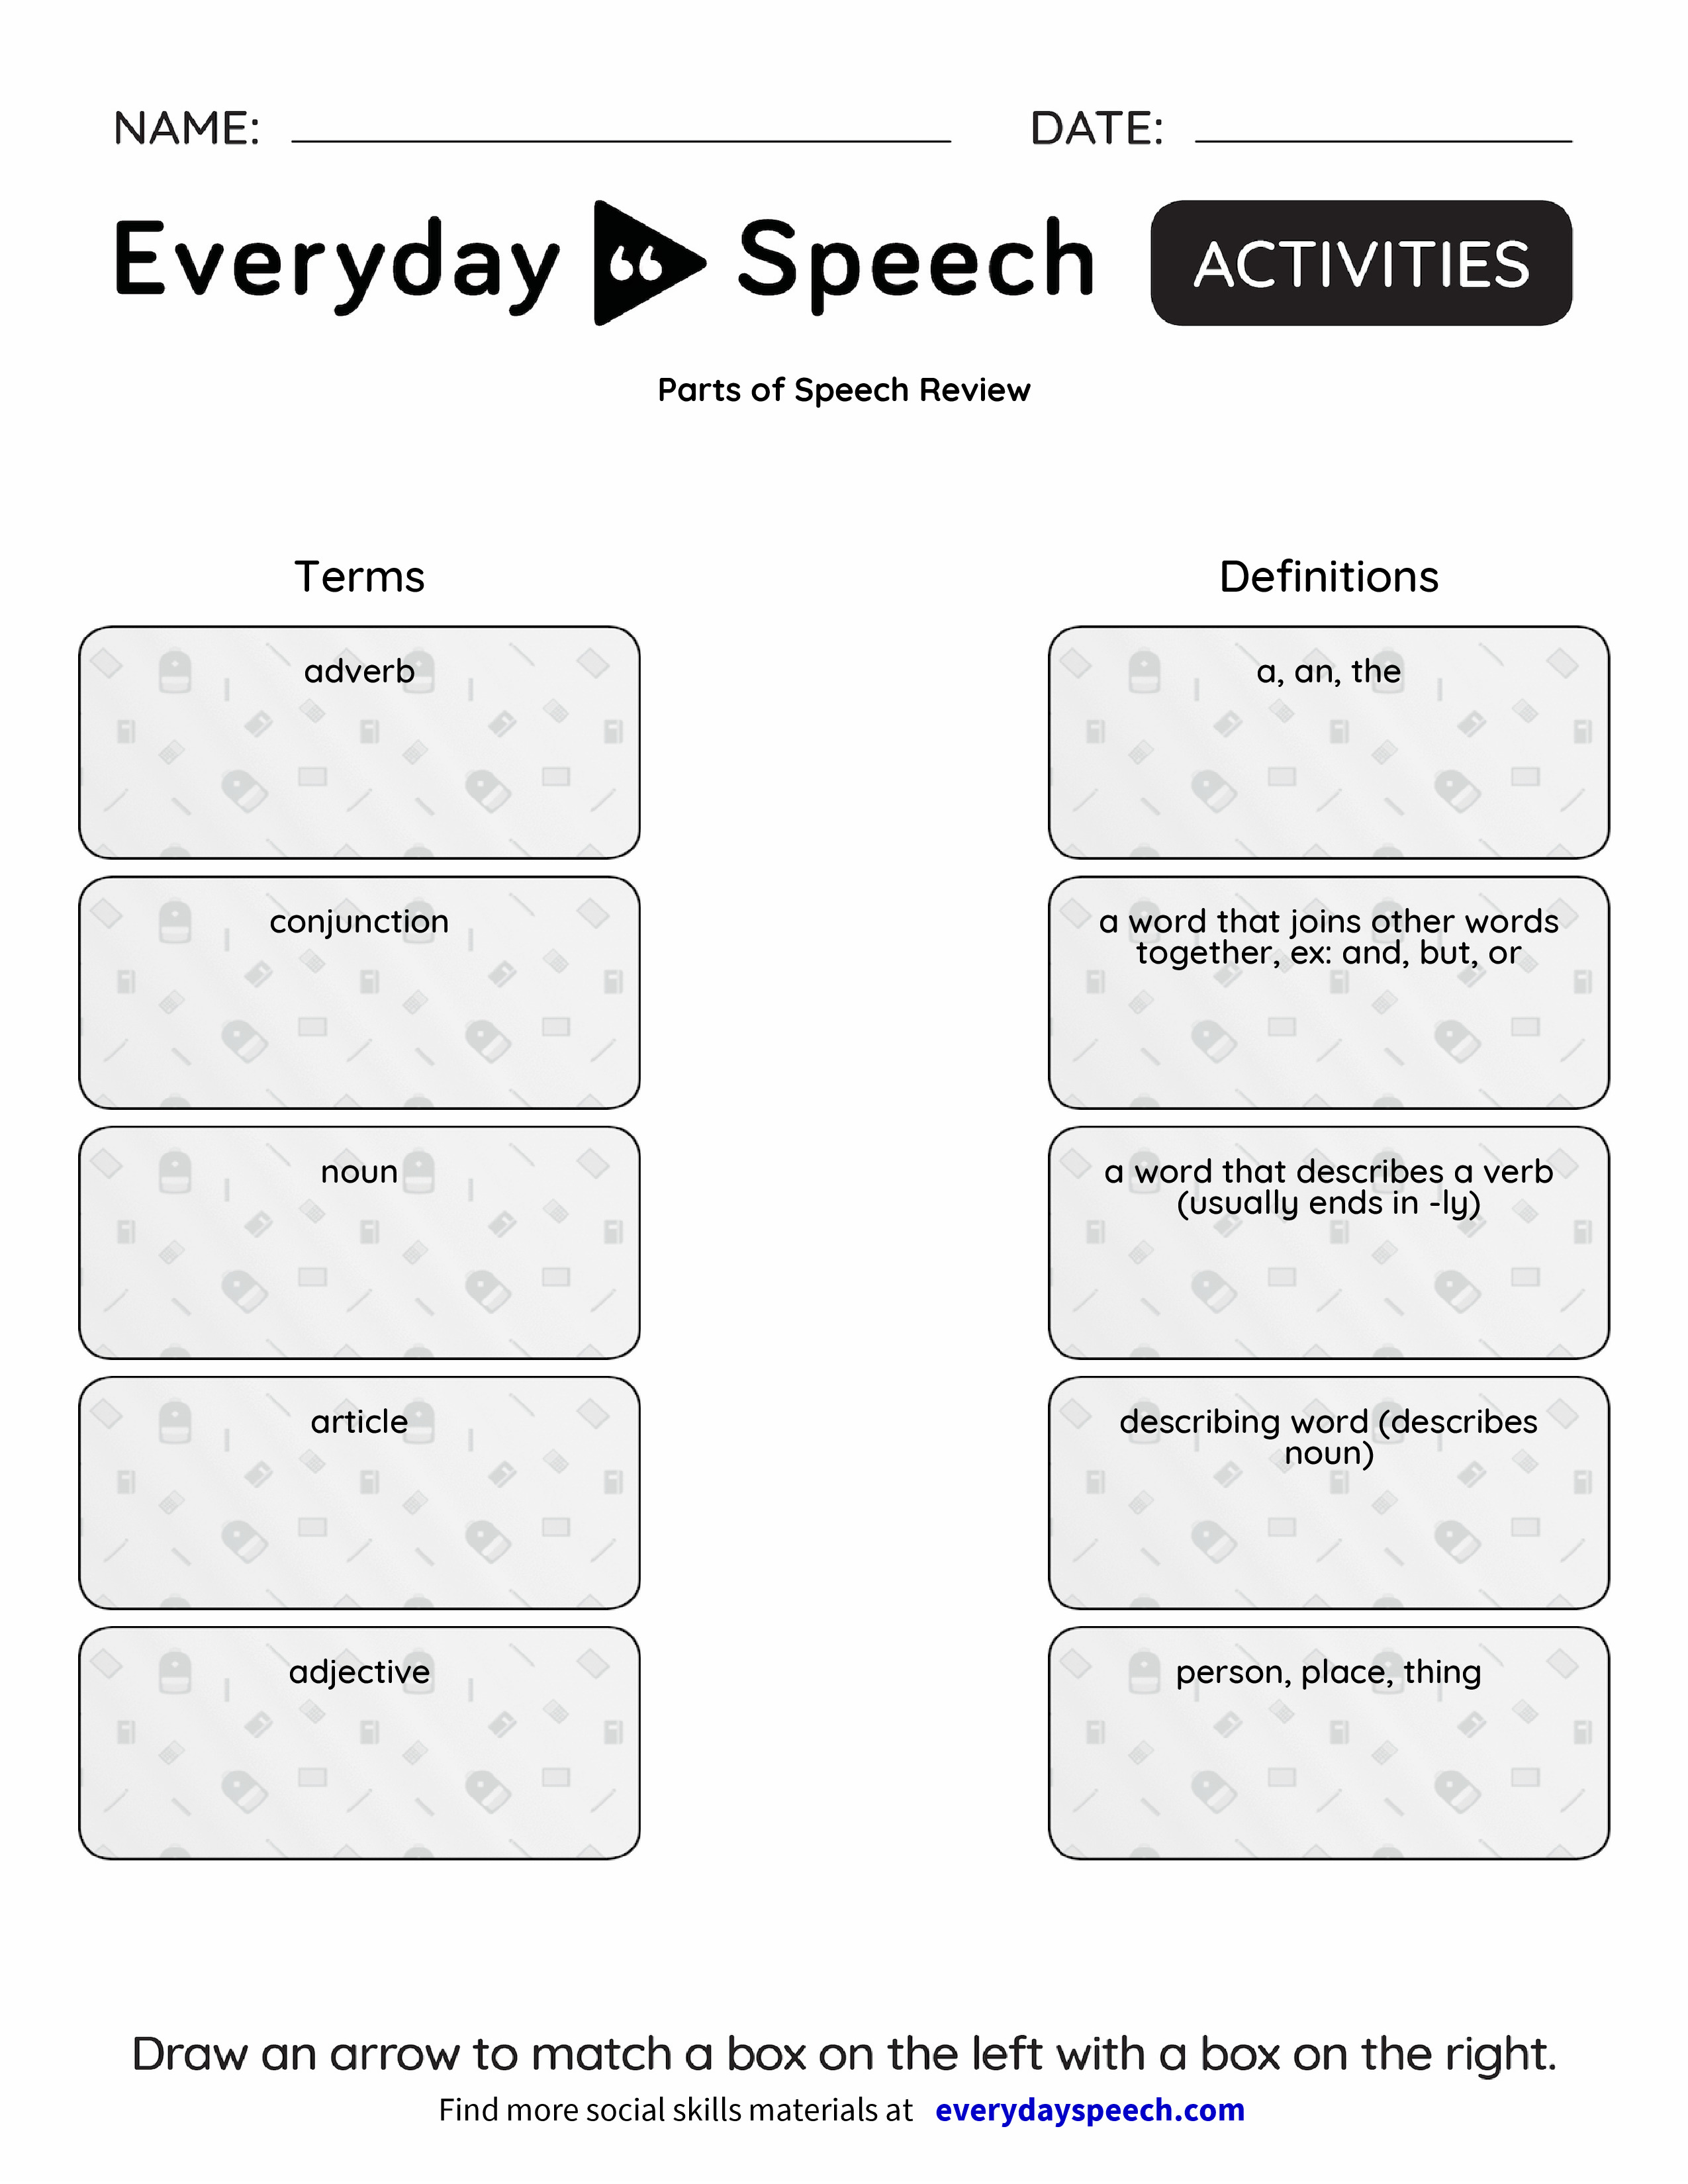 Worksheets Parts Of Speech Review Worksheet parts of speech review everyday preview preview